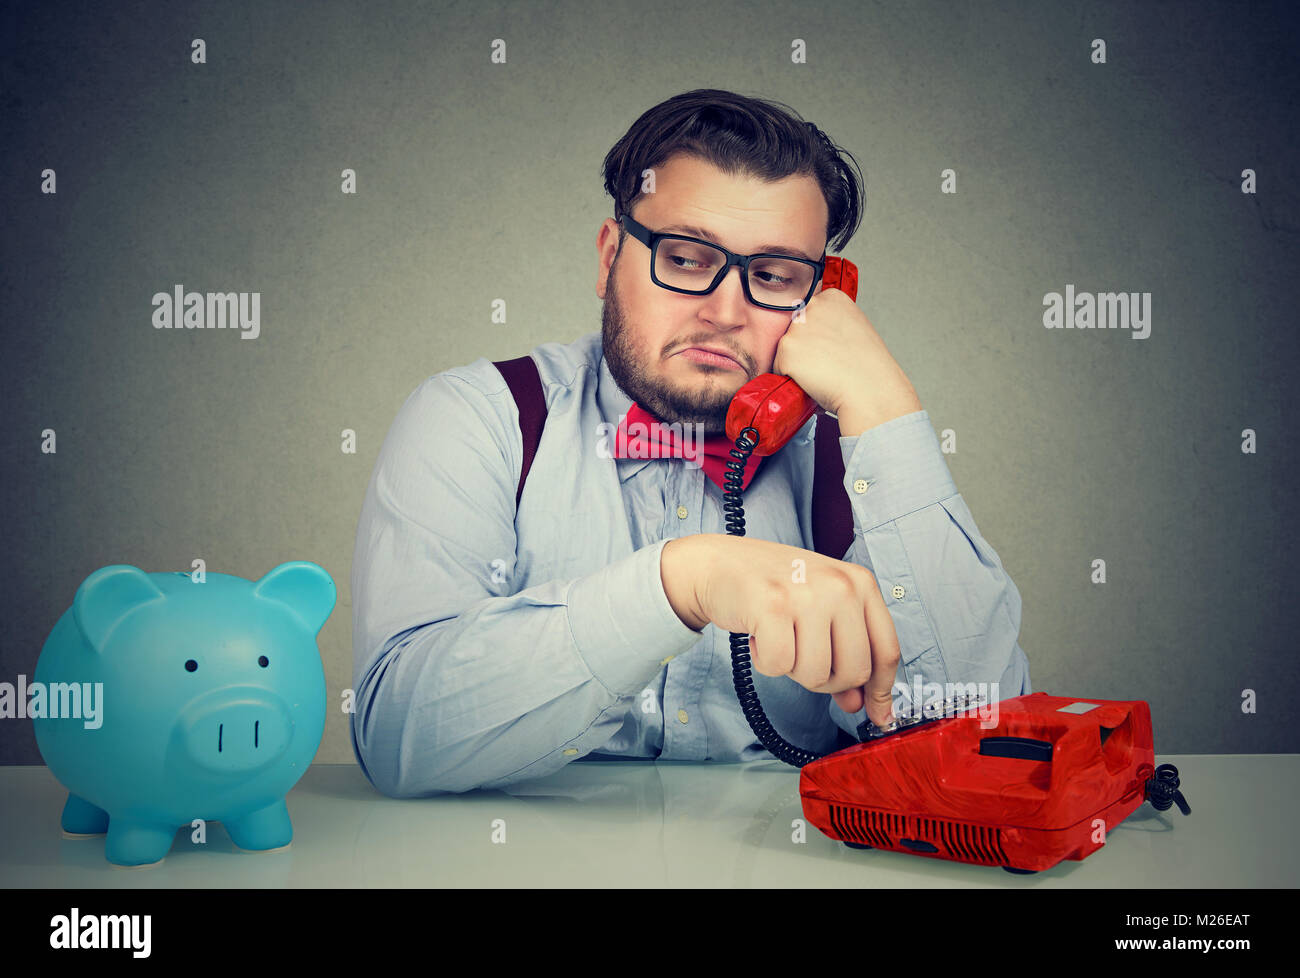 Sly young business man sitting at desk with moneybox and talking on phone callling a client. - Stock Image